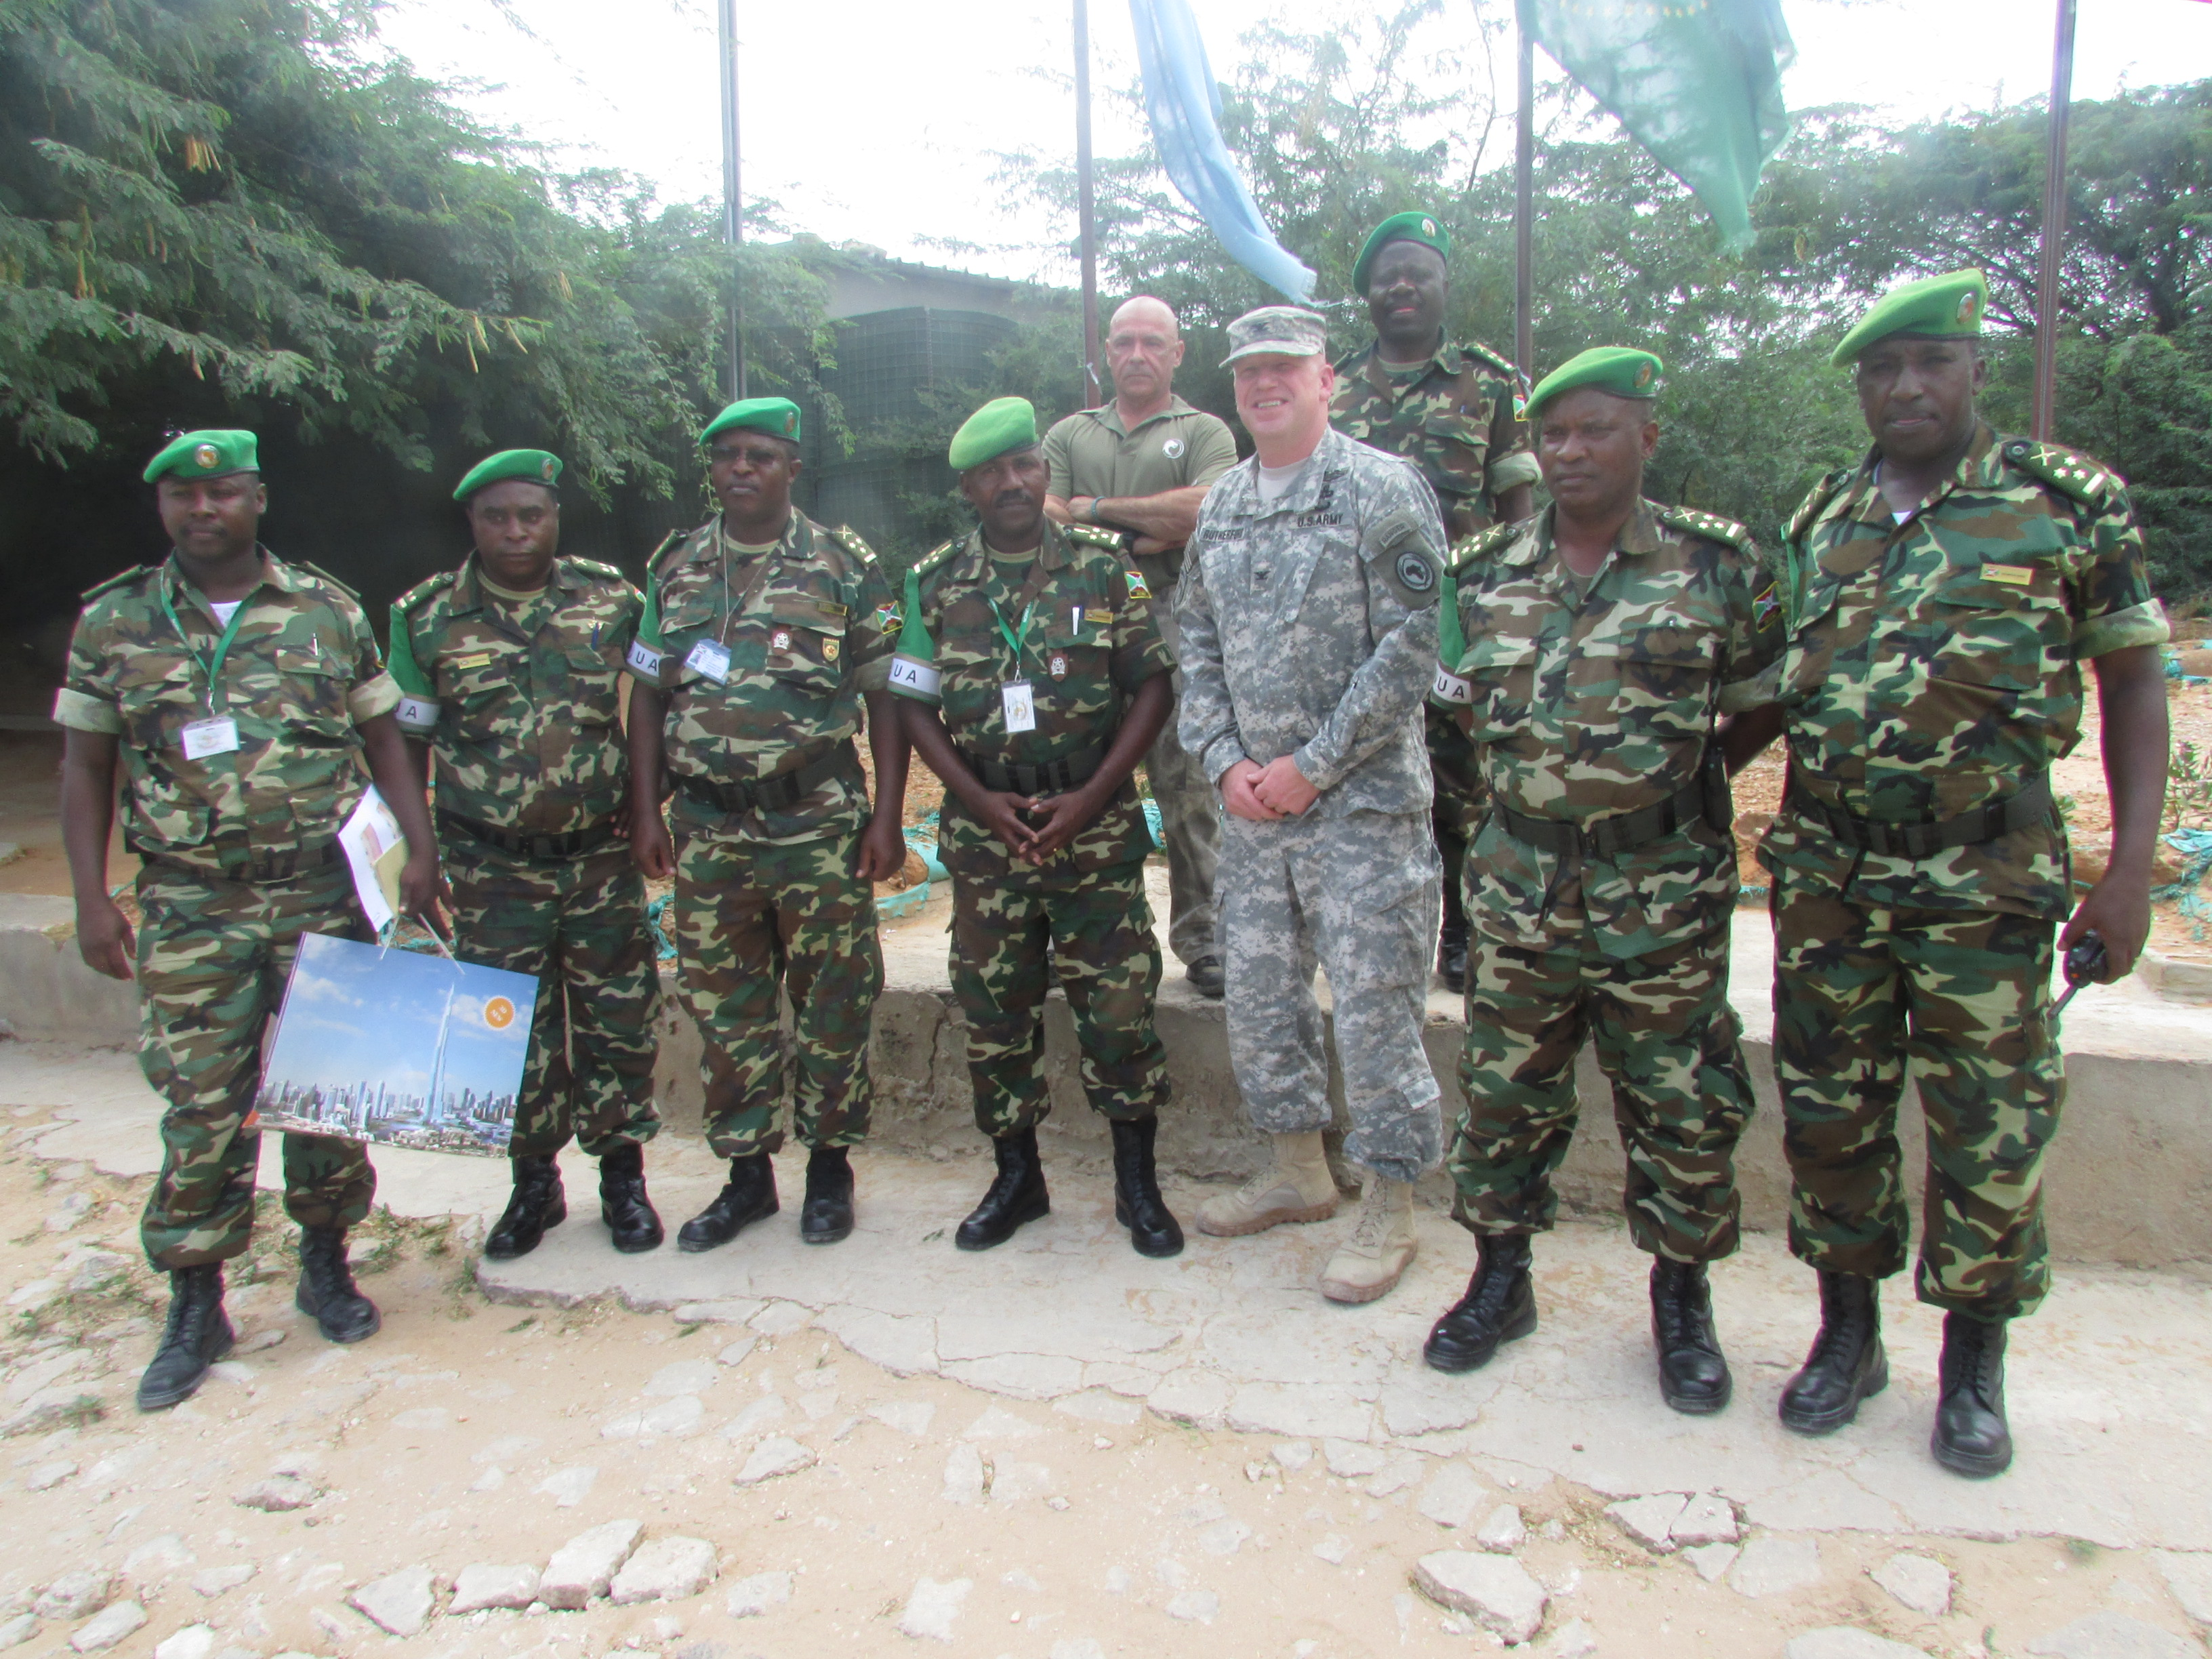 U.S. Army Col. Wilson Rutherford, center, U.S. Military Coordination Cell Mogadisu, visits with Burundi National Defense Forces at the African Union Mission in Somalia Sector 5 Headquarters located in northern Mogadishu. Burundian forces serving in AMISOM have been instrumental in creating a relatively secure environment which has allowed the Somali peace process to take root and allowed local population the opportunity to establish accountable local governing institutions. (BNDF Courtesy Photo)